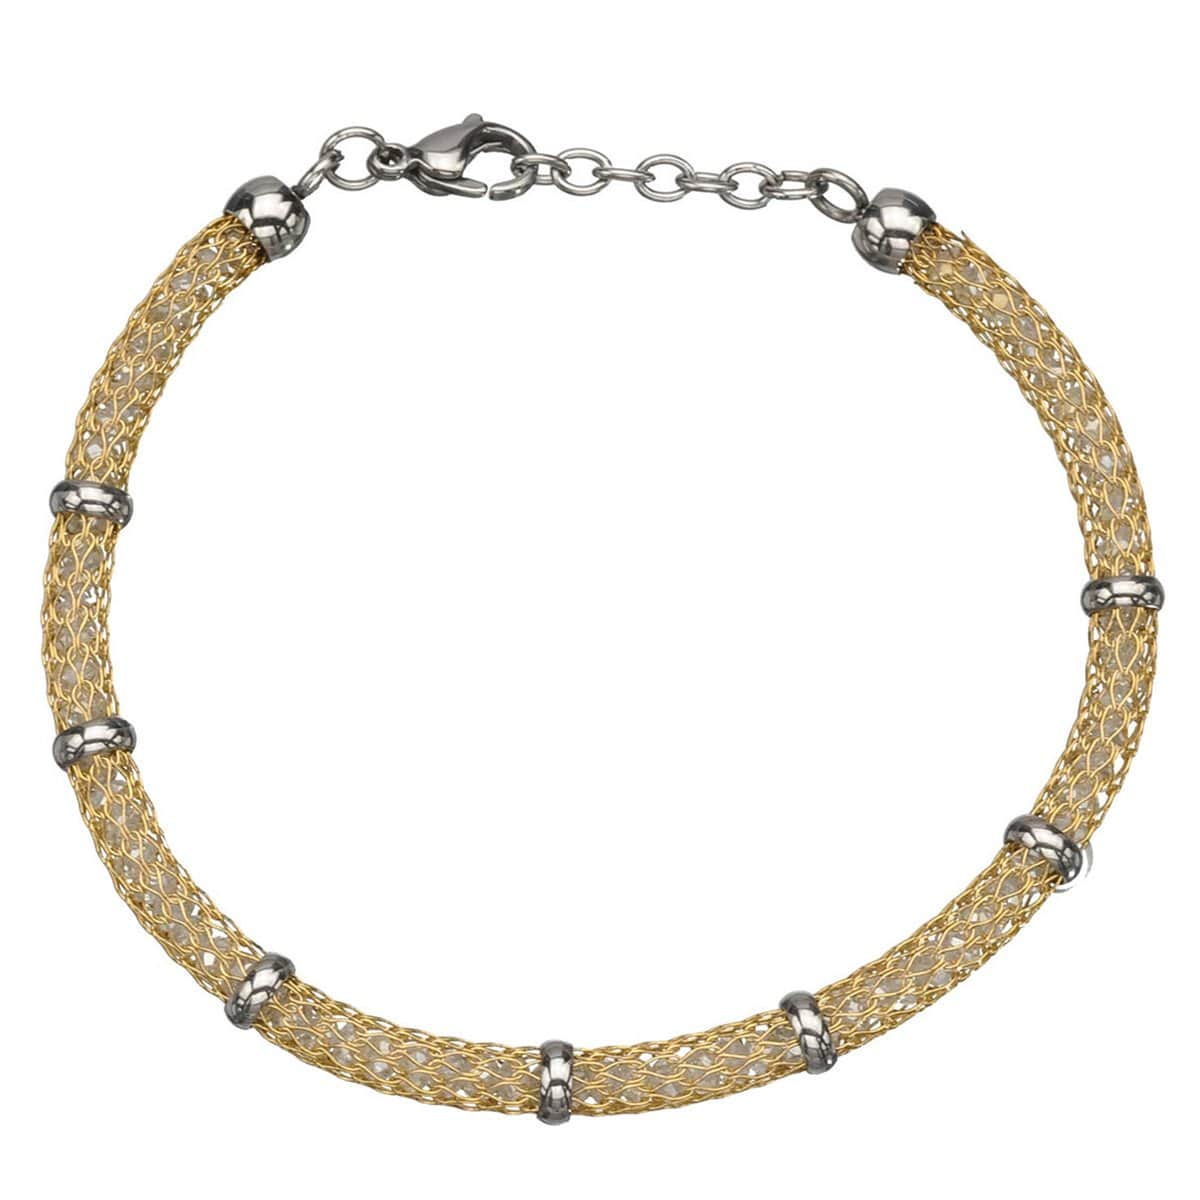 Gold & Silver Stainless Steel Thin Polished Net & Bead Bracelet